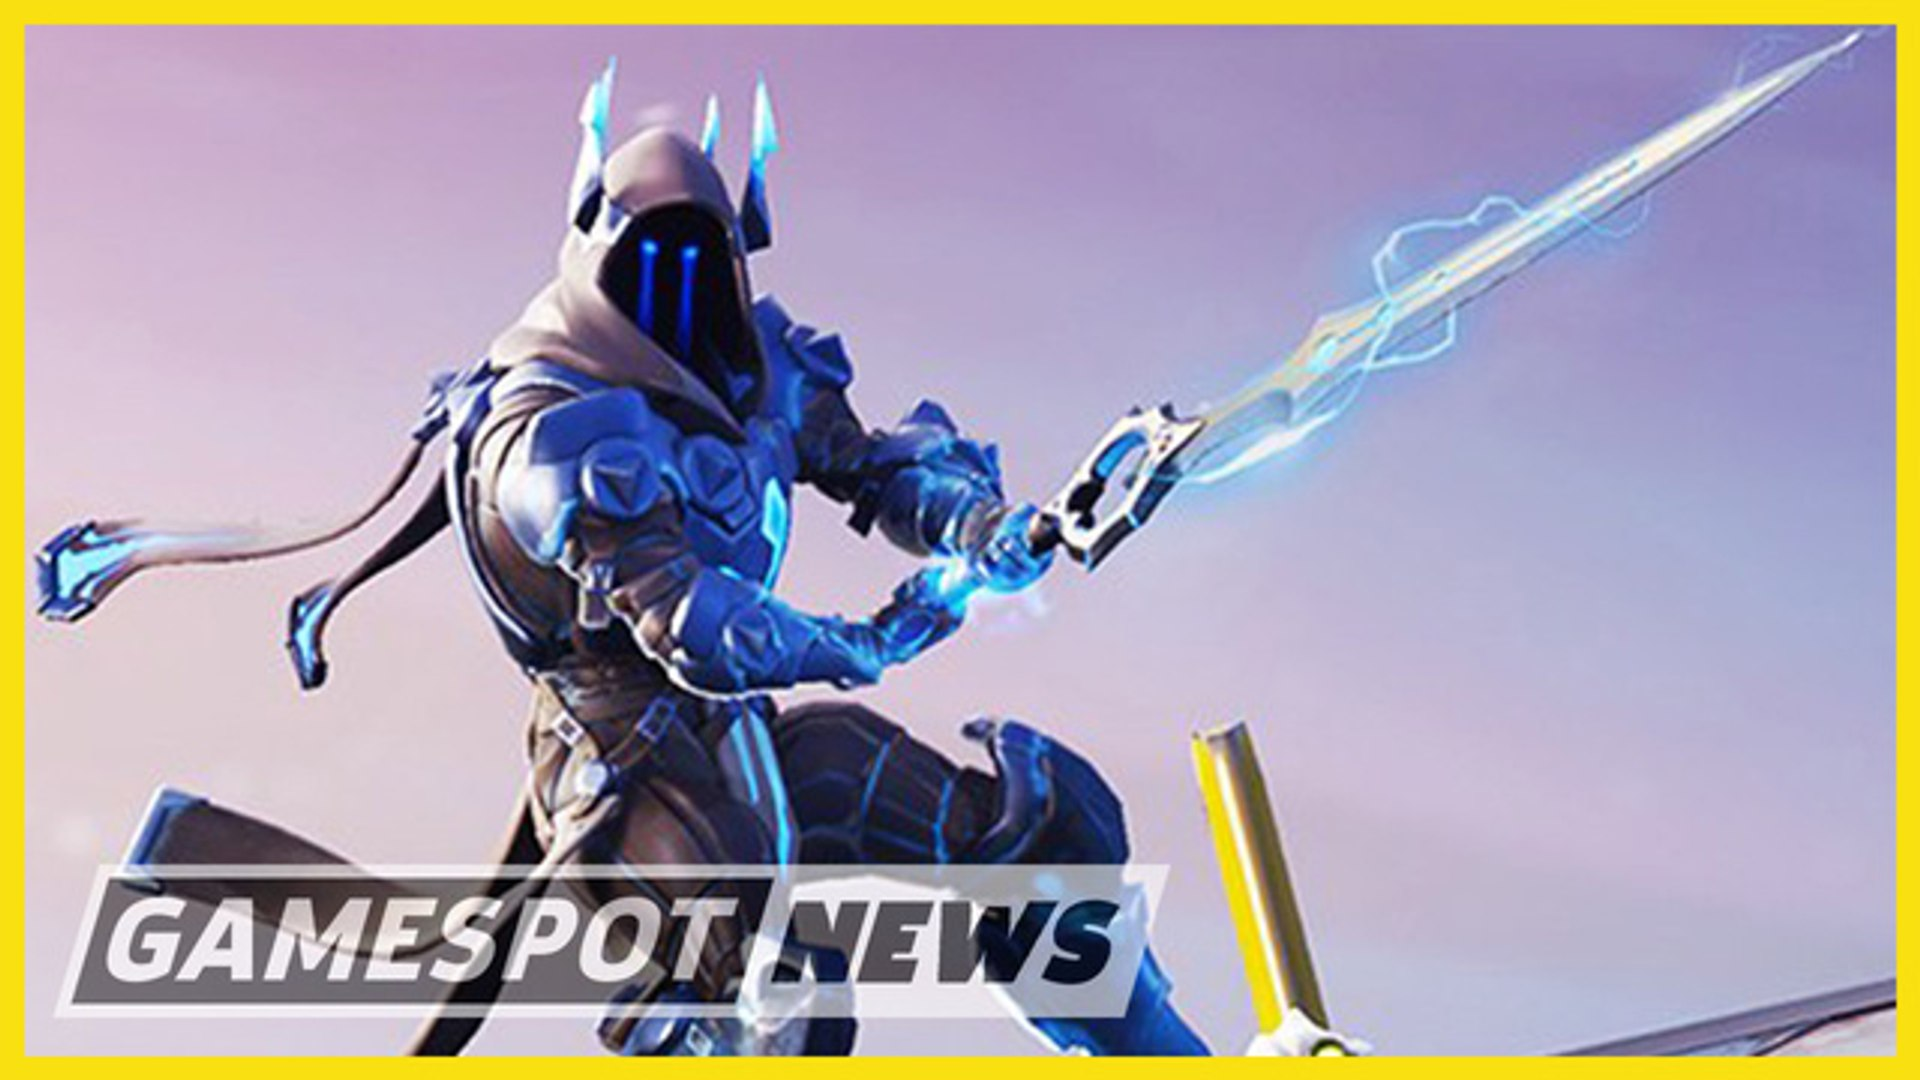 Cool New Fortnite Skin Out Now Alongside New Patch Gamespot